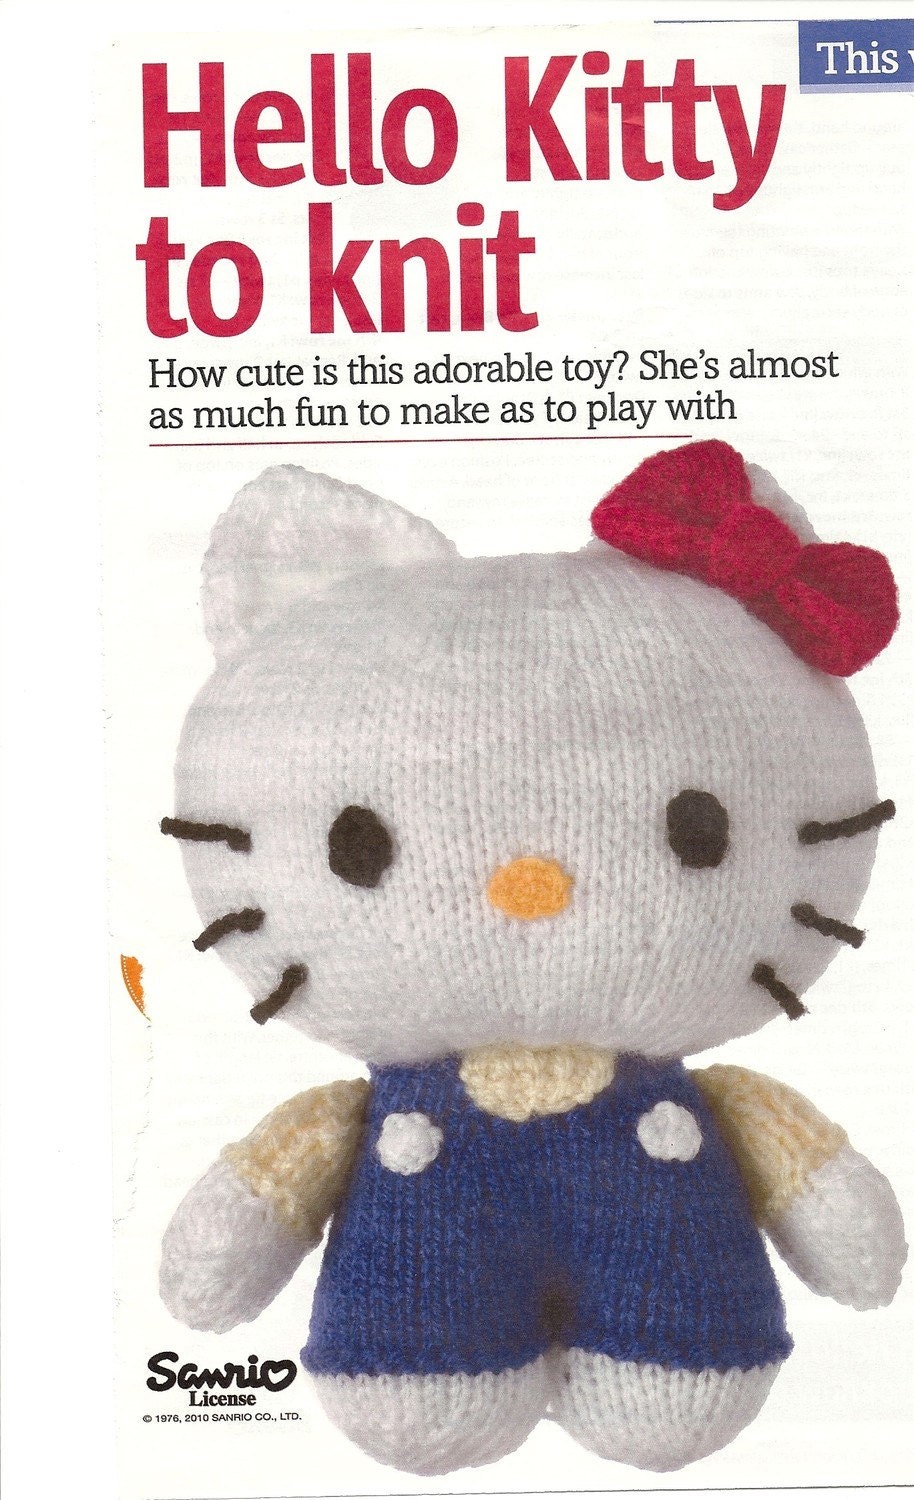 Knitting Pattern For Hello Kitty Sweater : Knitting pattern Hello kitty toy